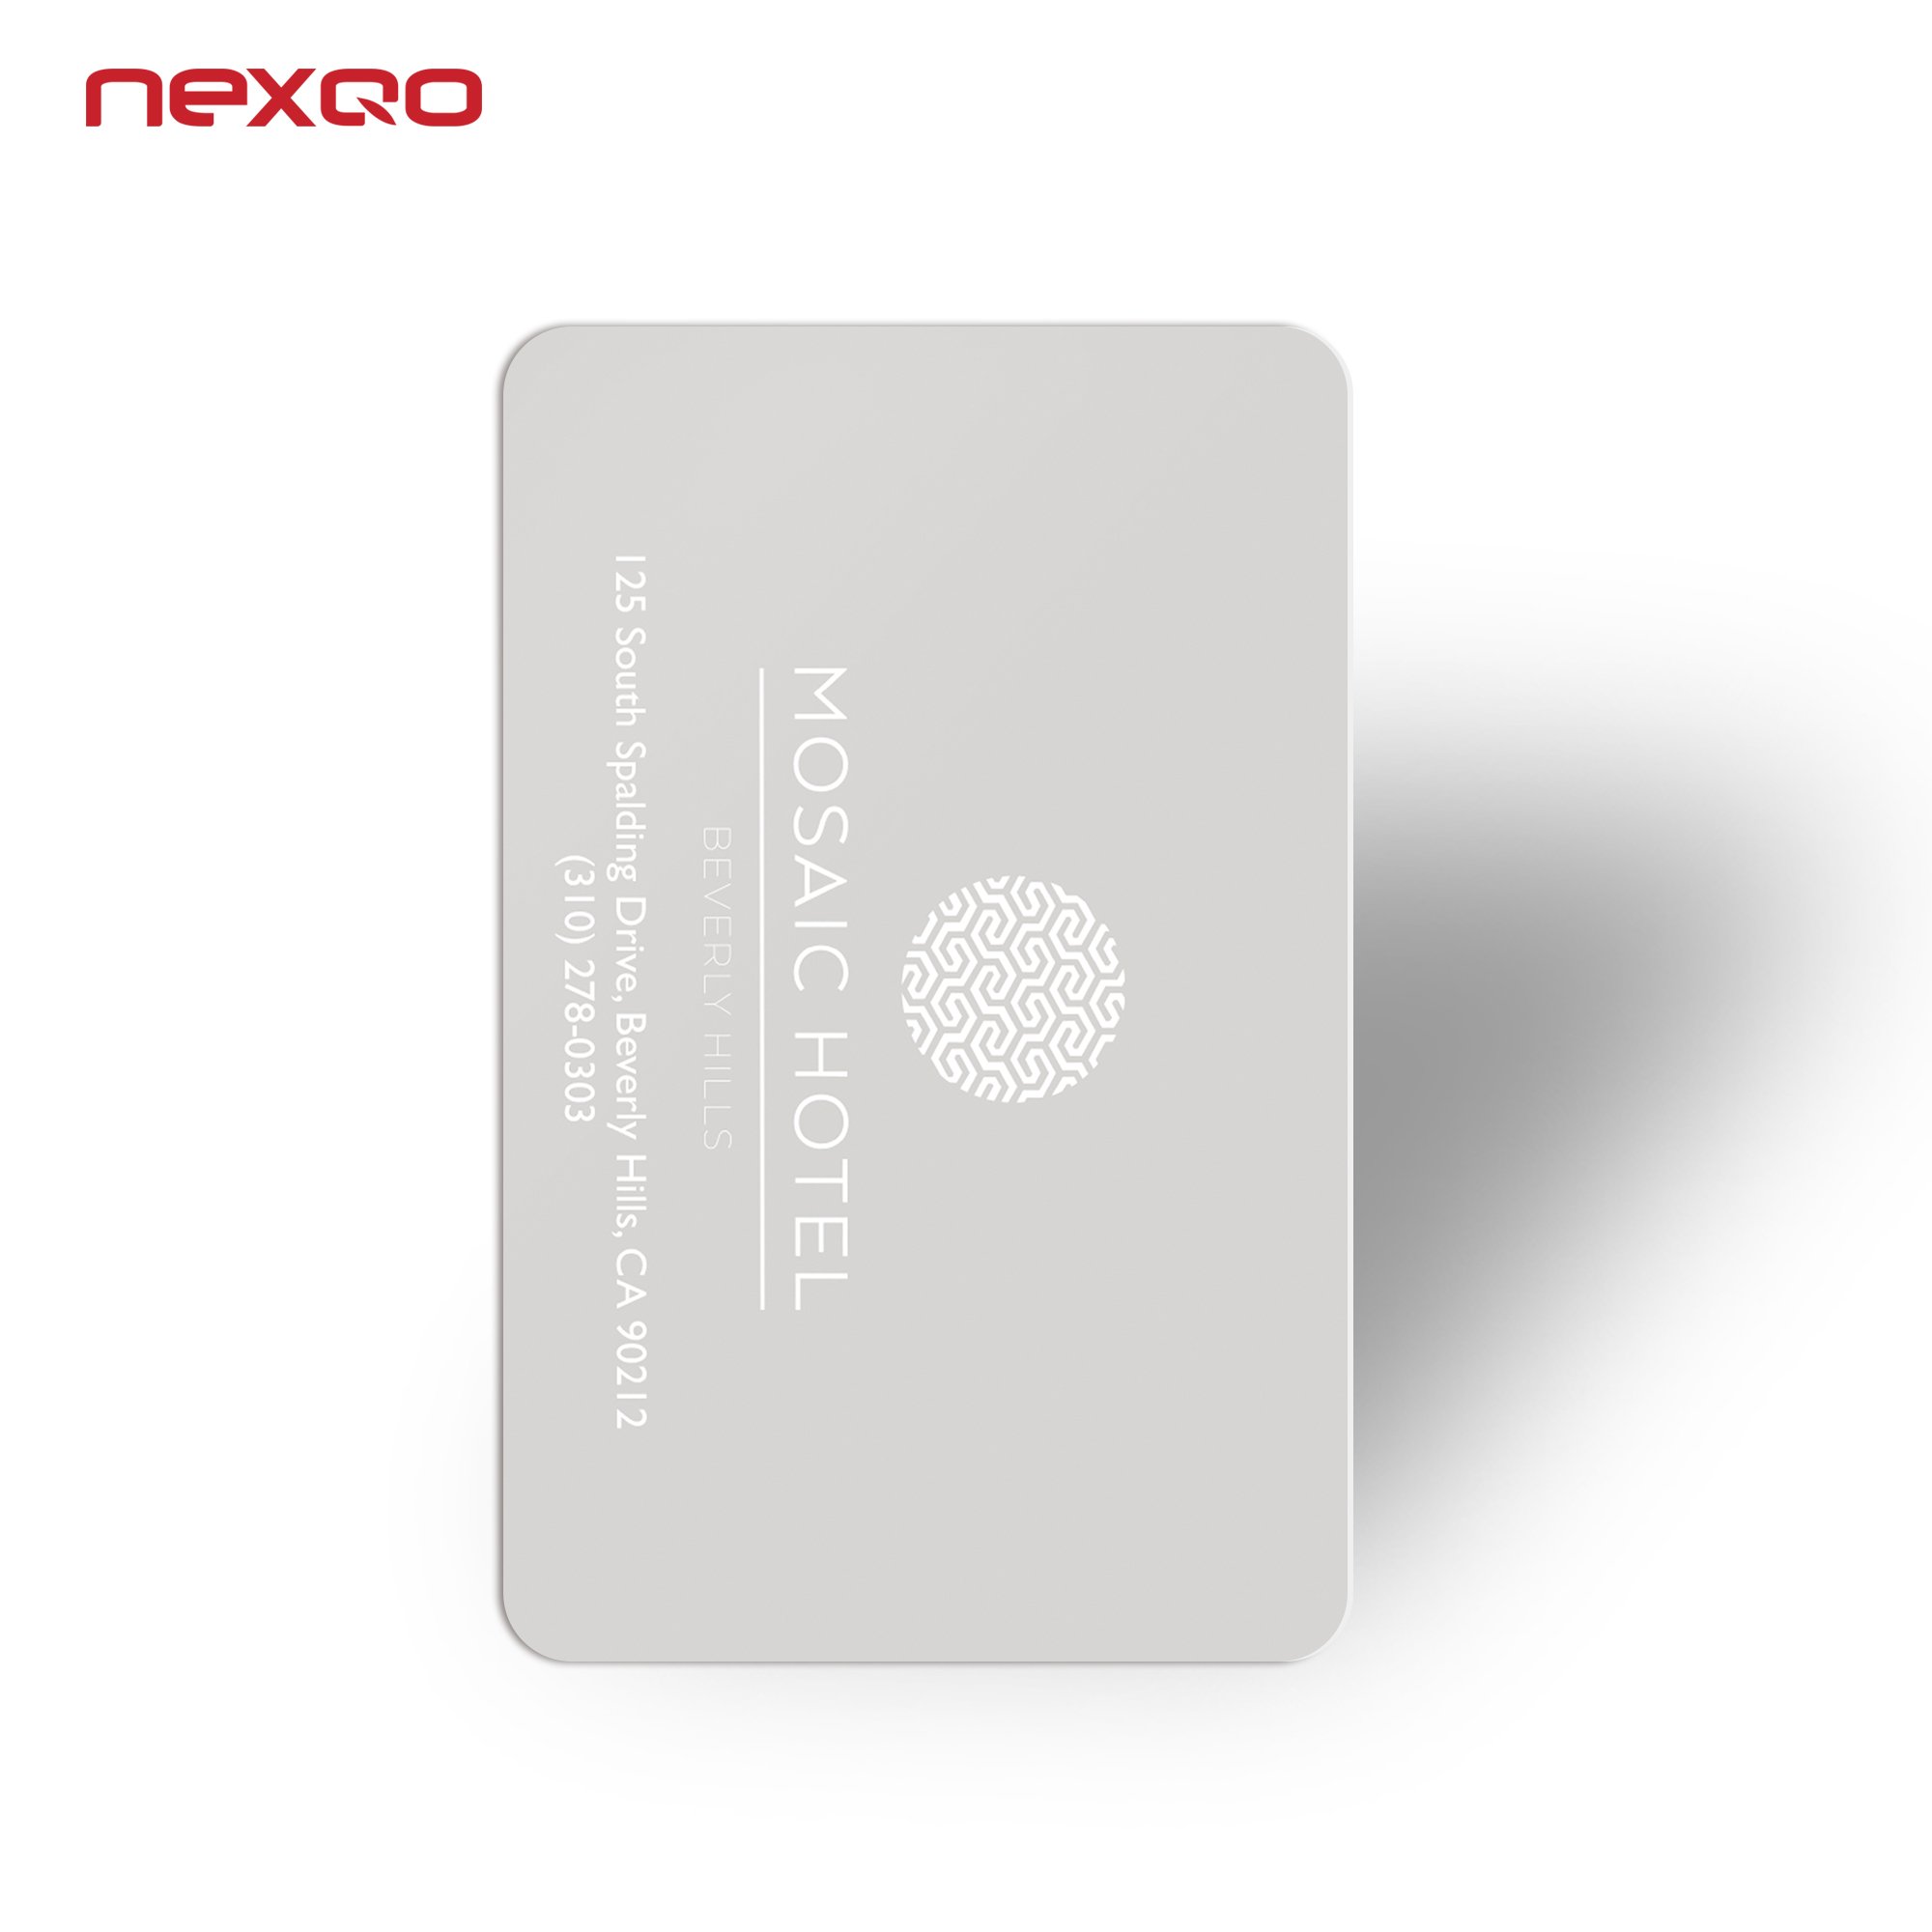 Grosir ISO14443A PVC Programmable Contactless Smart Card RFID NFC Chip Kartu